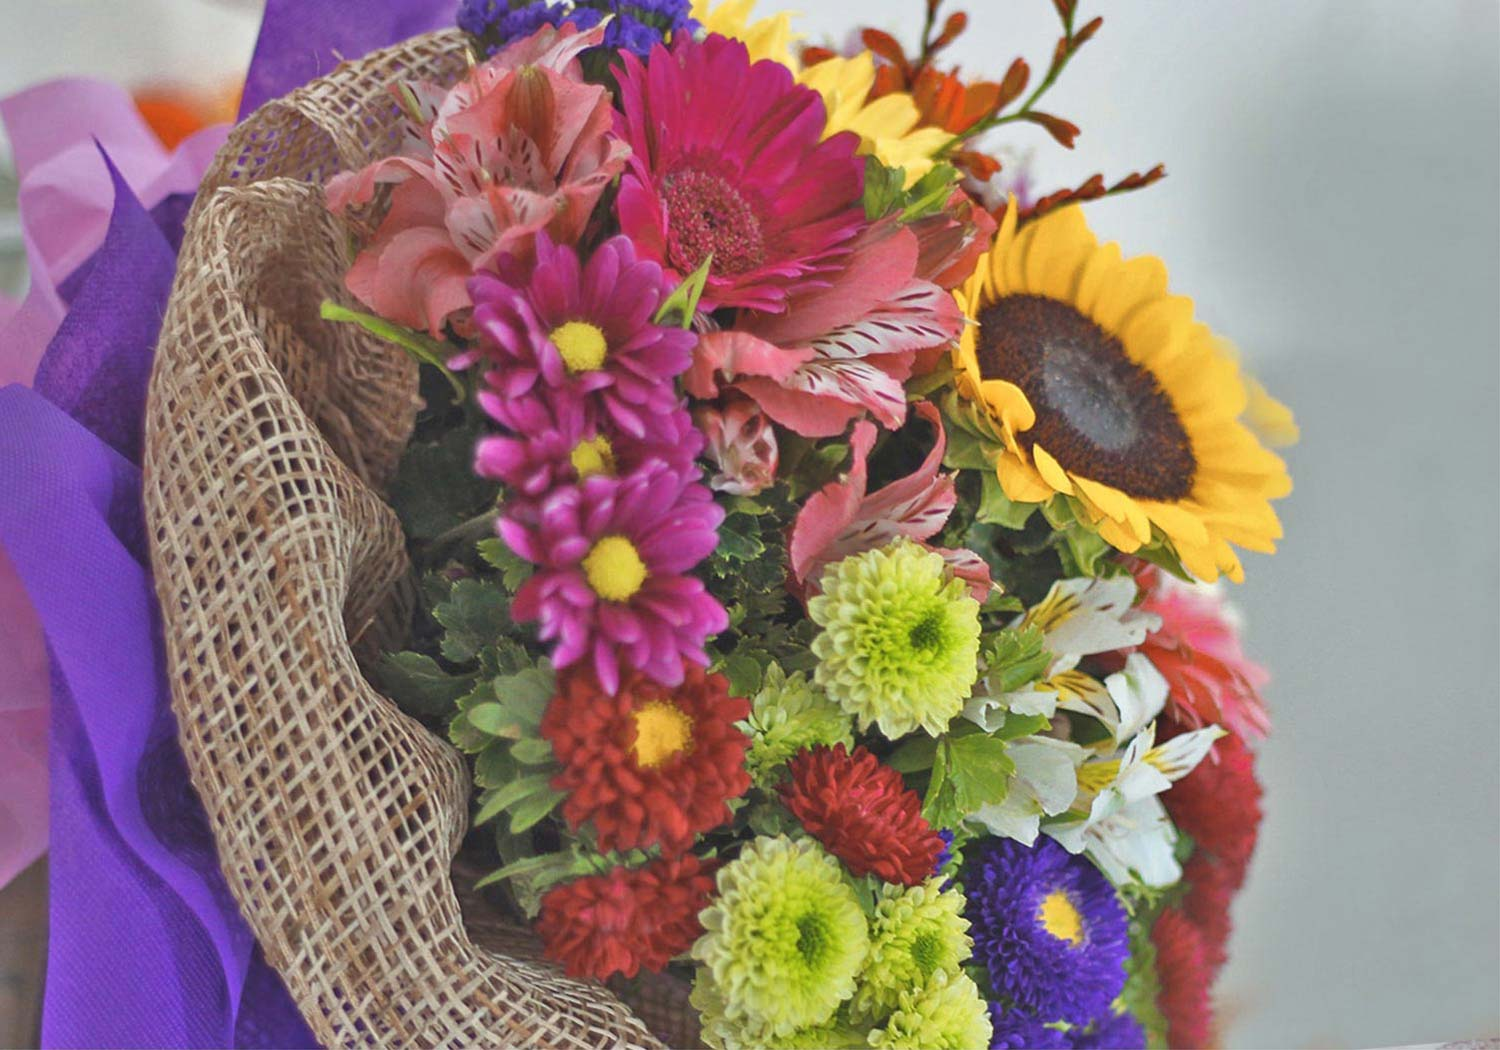 a-bouquet-of-mixed-colorful-flowers